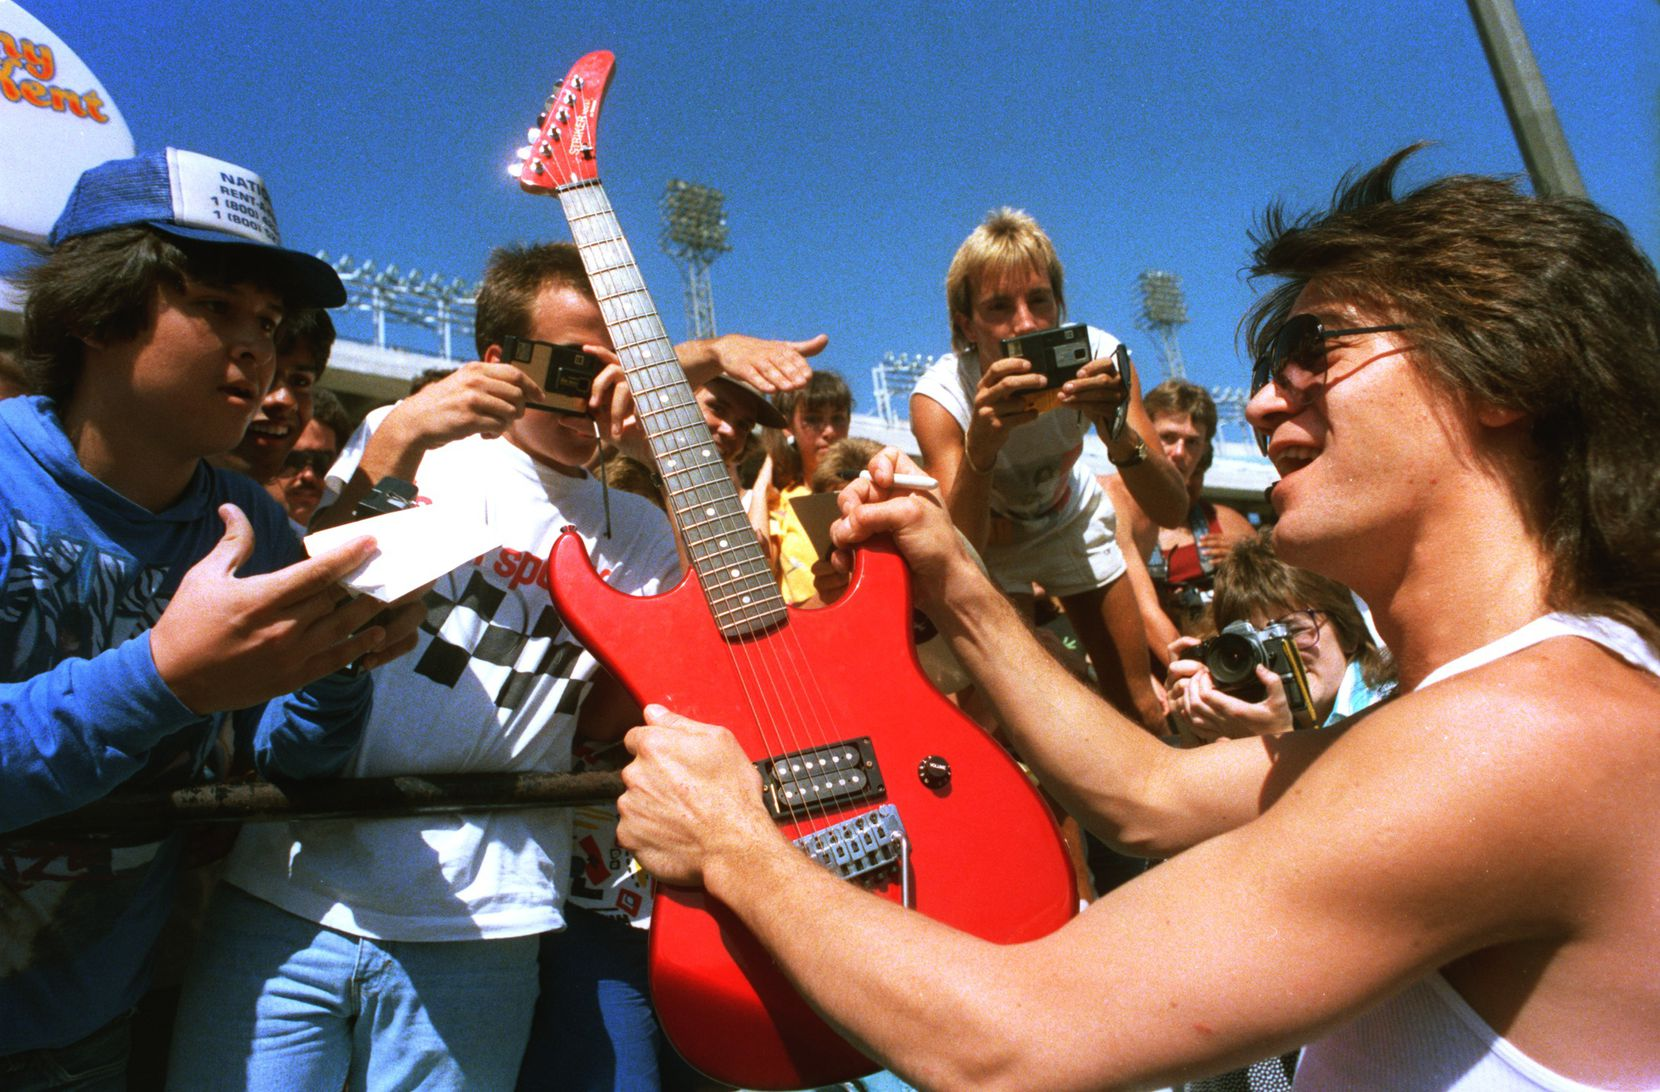 Eddie Van Halen is surrounded by fans at a news conference at the Cotton Bowl on July 17, 1986 ahead of a Texxas Jam concert.